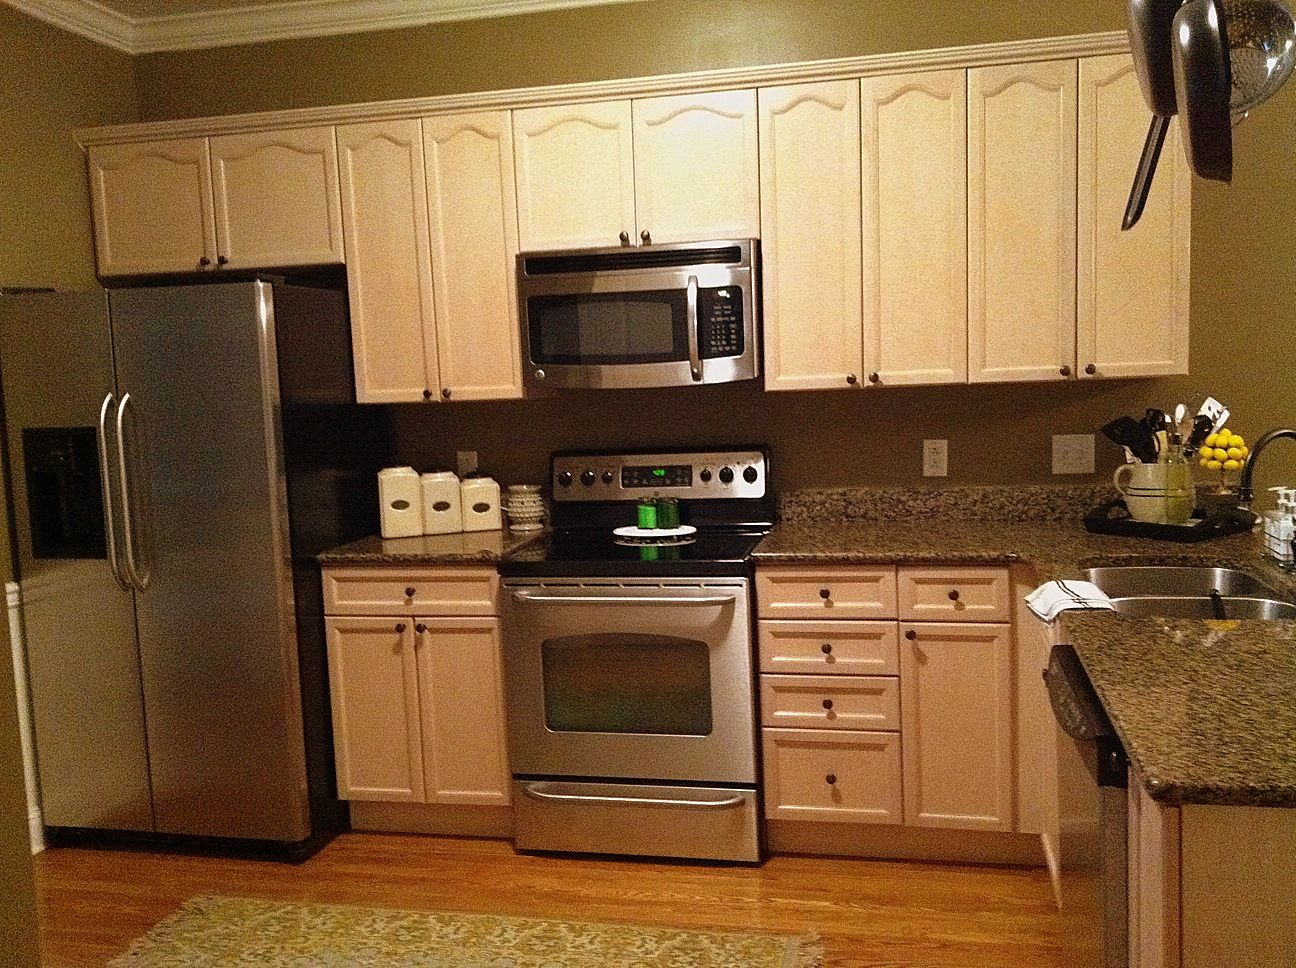 Kitchens With Pickled Oak Cabinets Drumroll All I Can Picture Here Is Clark Griswold Painting Kitchen Cabinets Oak Kitchen Cabinets Laminate Kitchen Cabinets